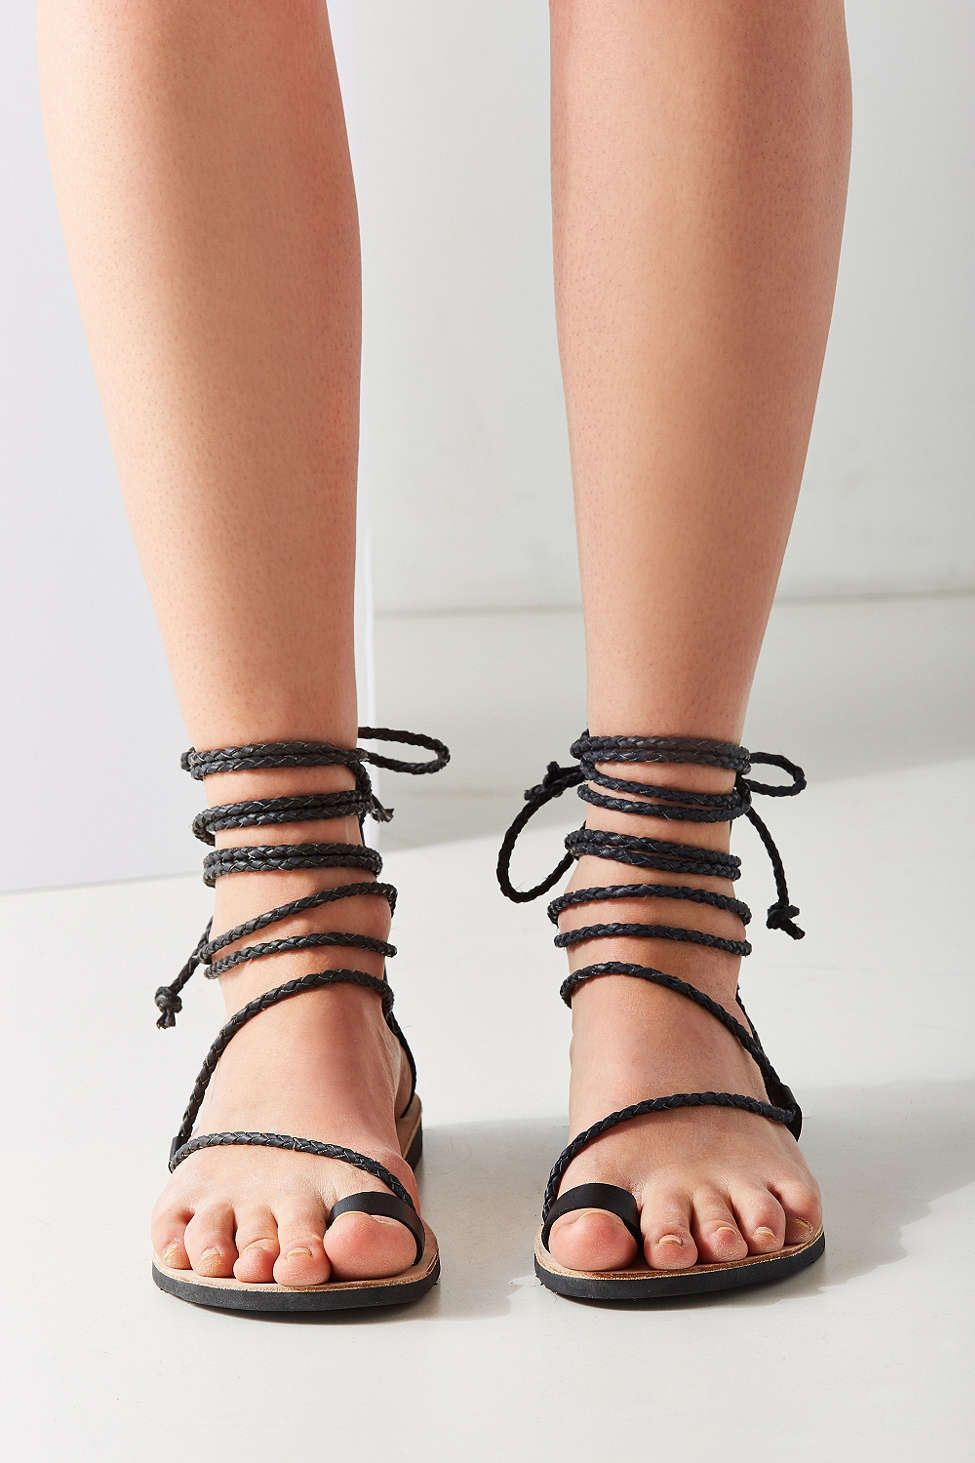 255a4218cdc Shop Jeffrey Campbell Adios Gladiator Sandal at Urban Outfitters today. We  carry all the latest styles